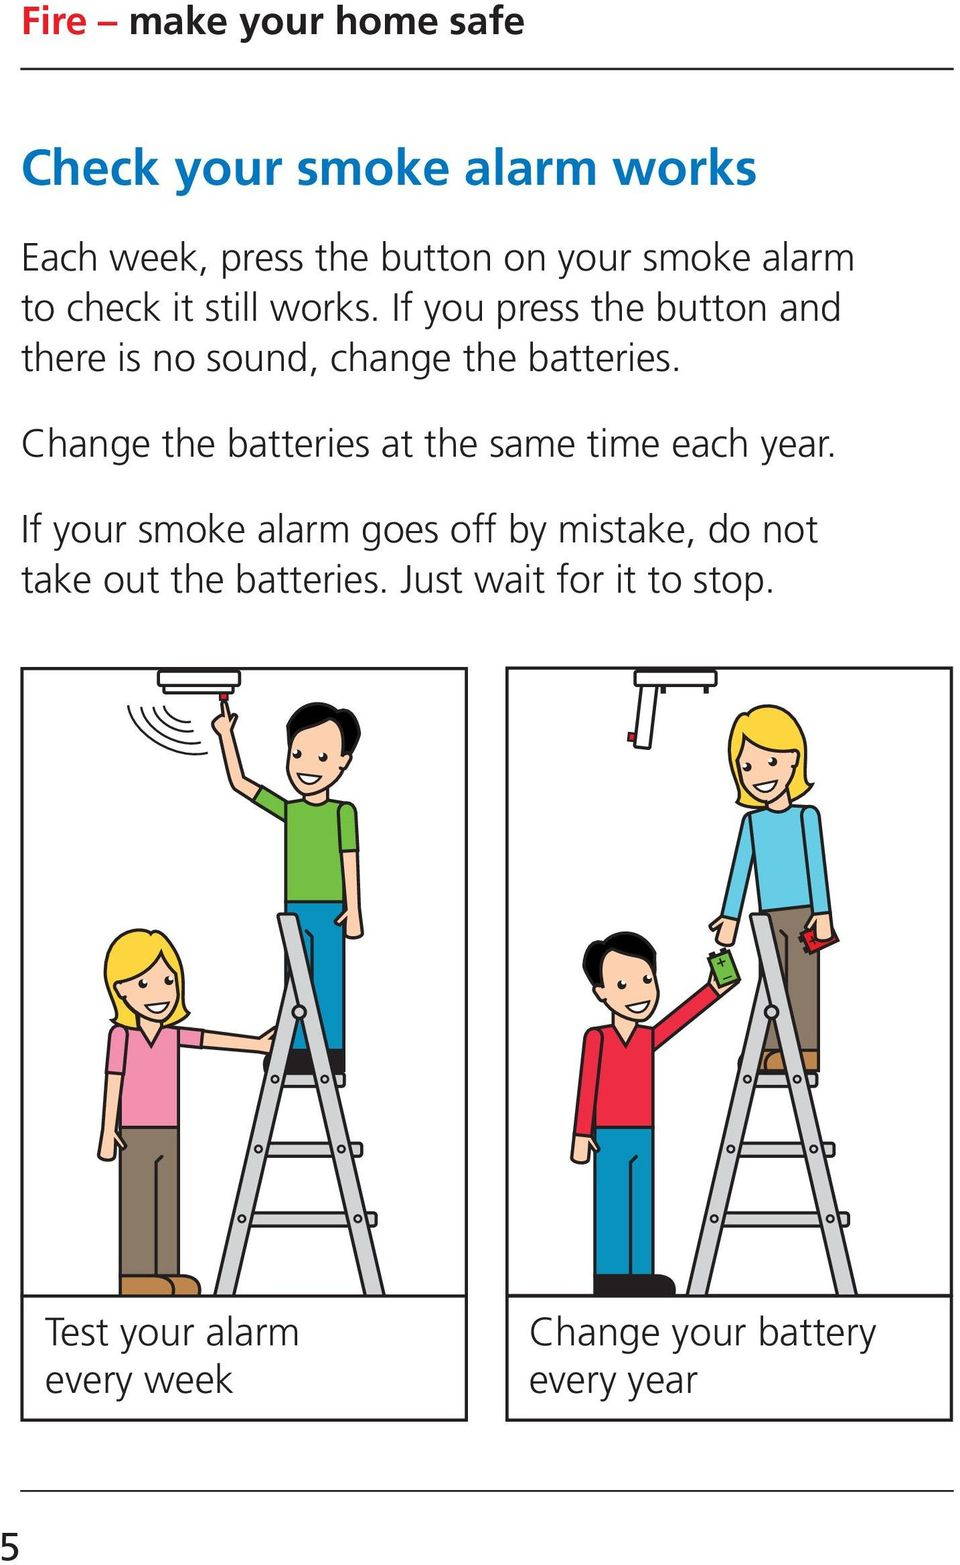 Change the batteries at the same time each year.